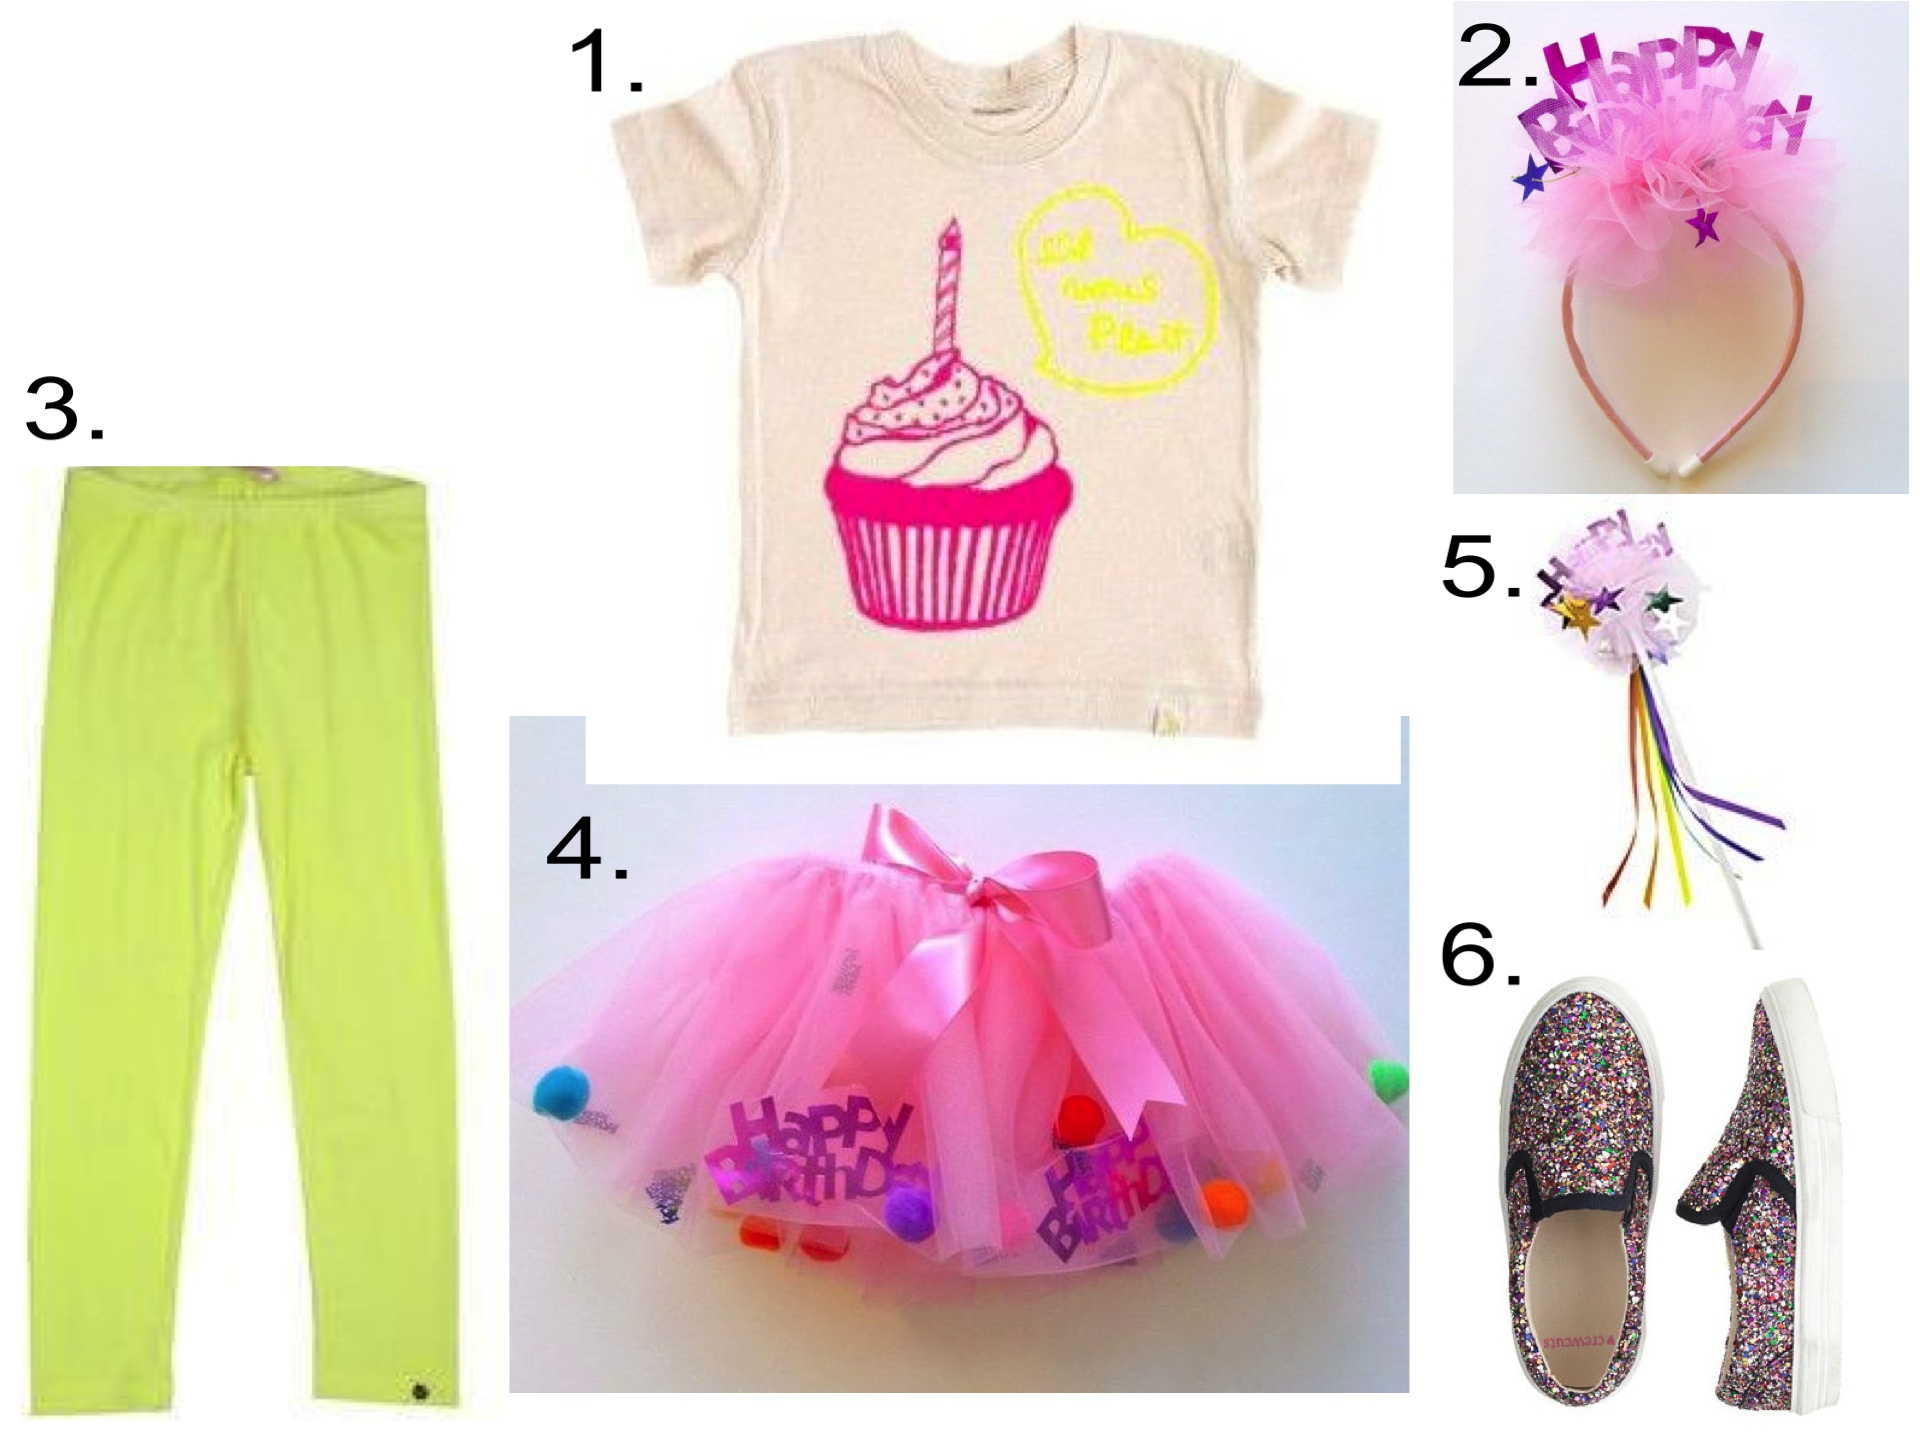 I think every Birthday Girl needs a Birthday Tutu in addition to a Birthday T-Shirt!  1.  ATELiER ATSUYO ET AKiKO Organic Cupcake Tee  |2. fire and creme happy birthday head band |3. SO TWEE by MISS GRANT Leggings |4. fire and creme happy birthday tutu  |5.  Wishworks by Chasing Fireflies birthday fairy wand |6.  J.Crew GIRLS' GLITTER SLIP-ON SNEAKERS